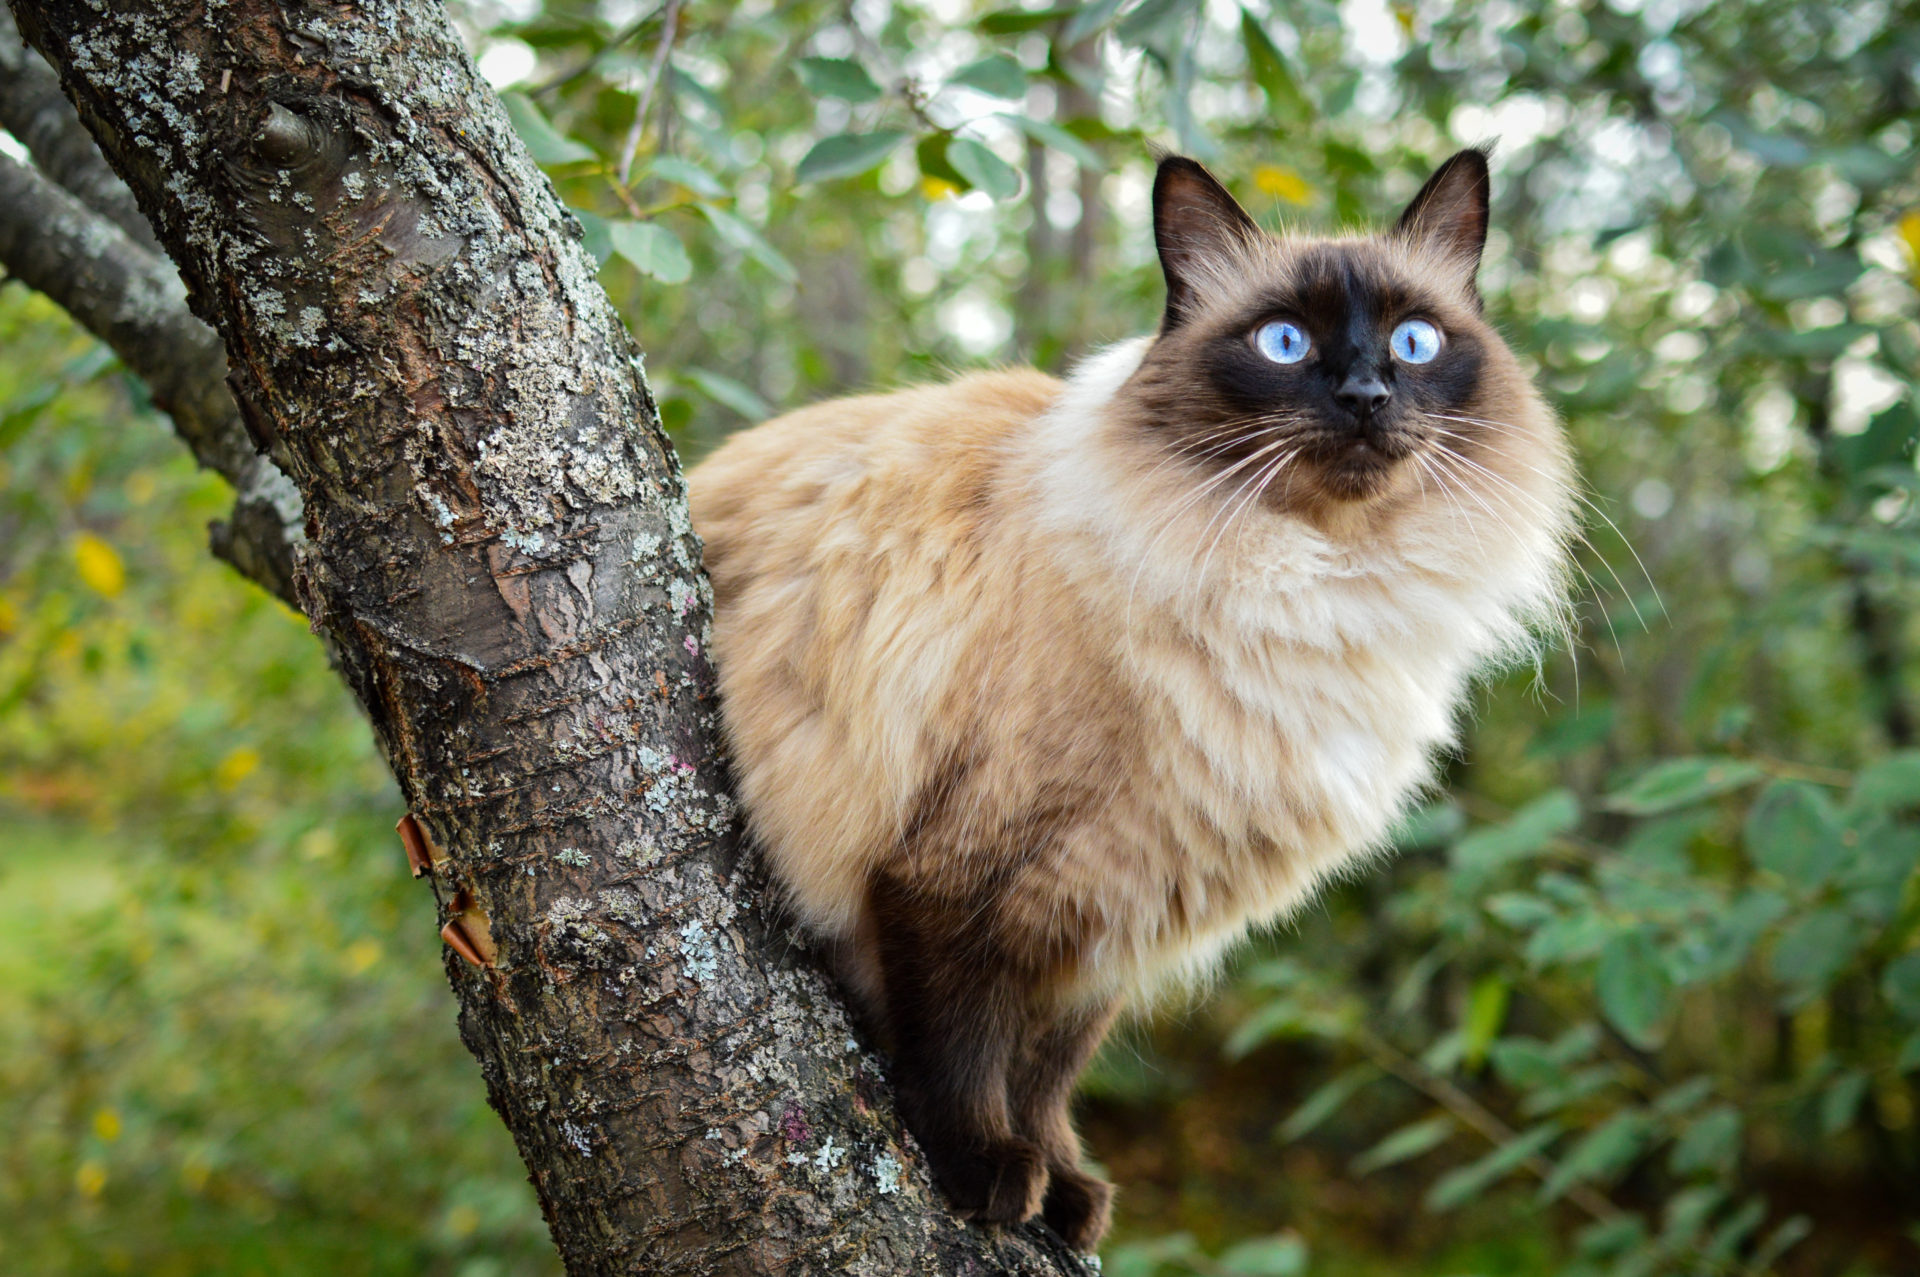 The Balinese cat in a tree